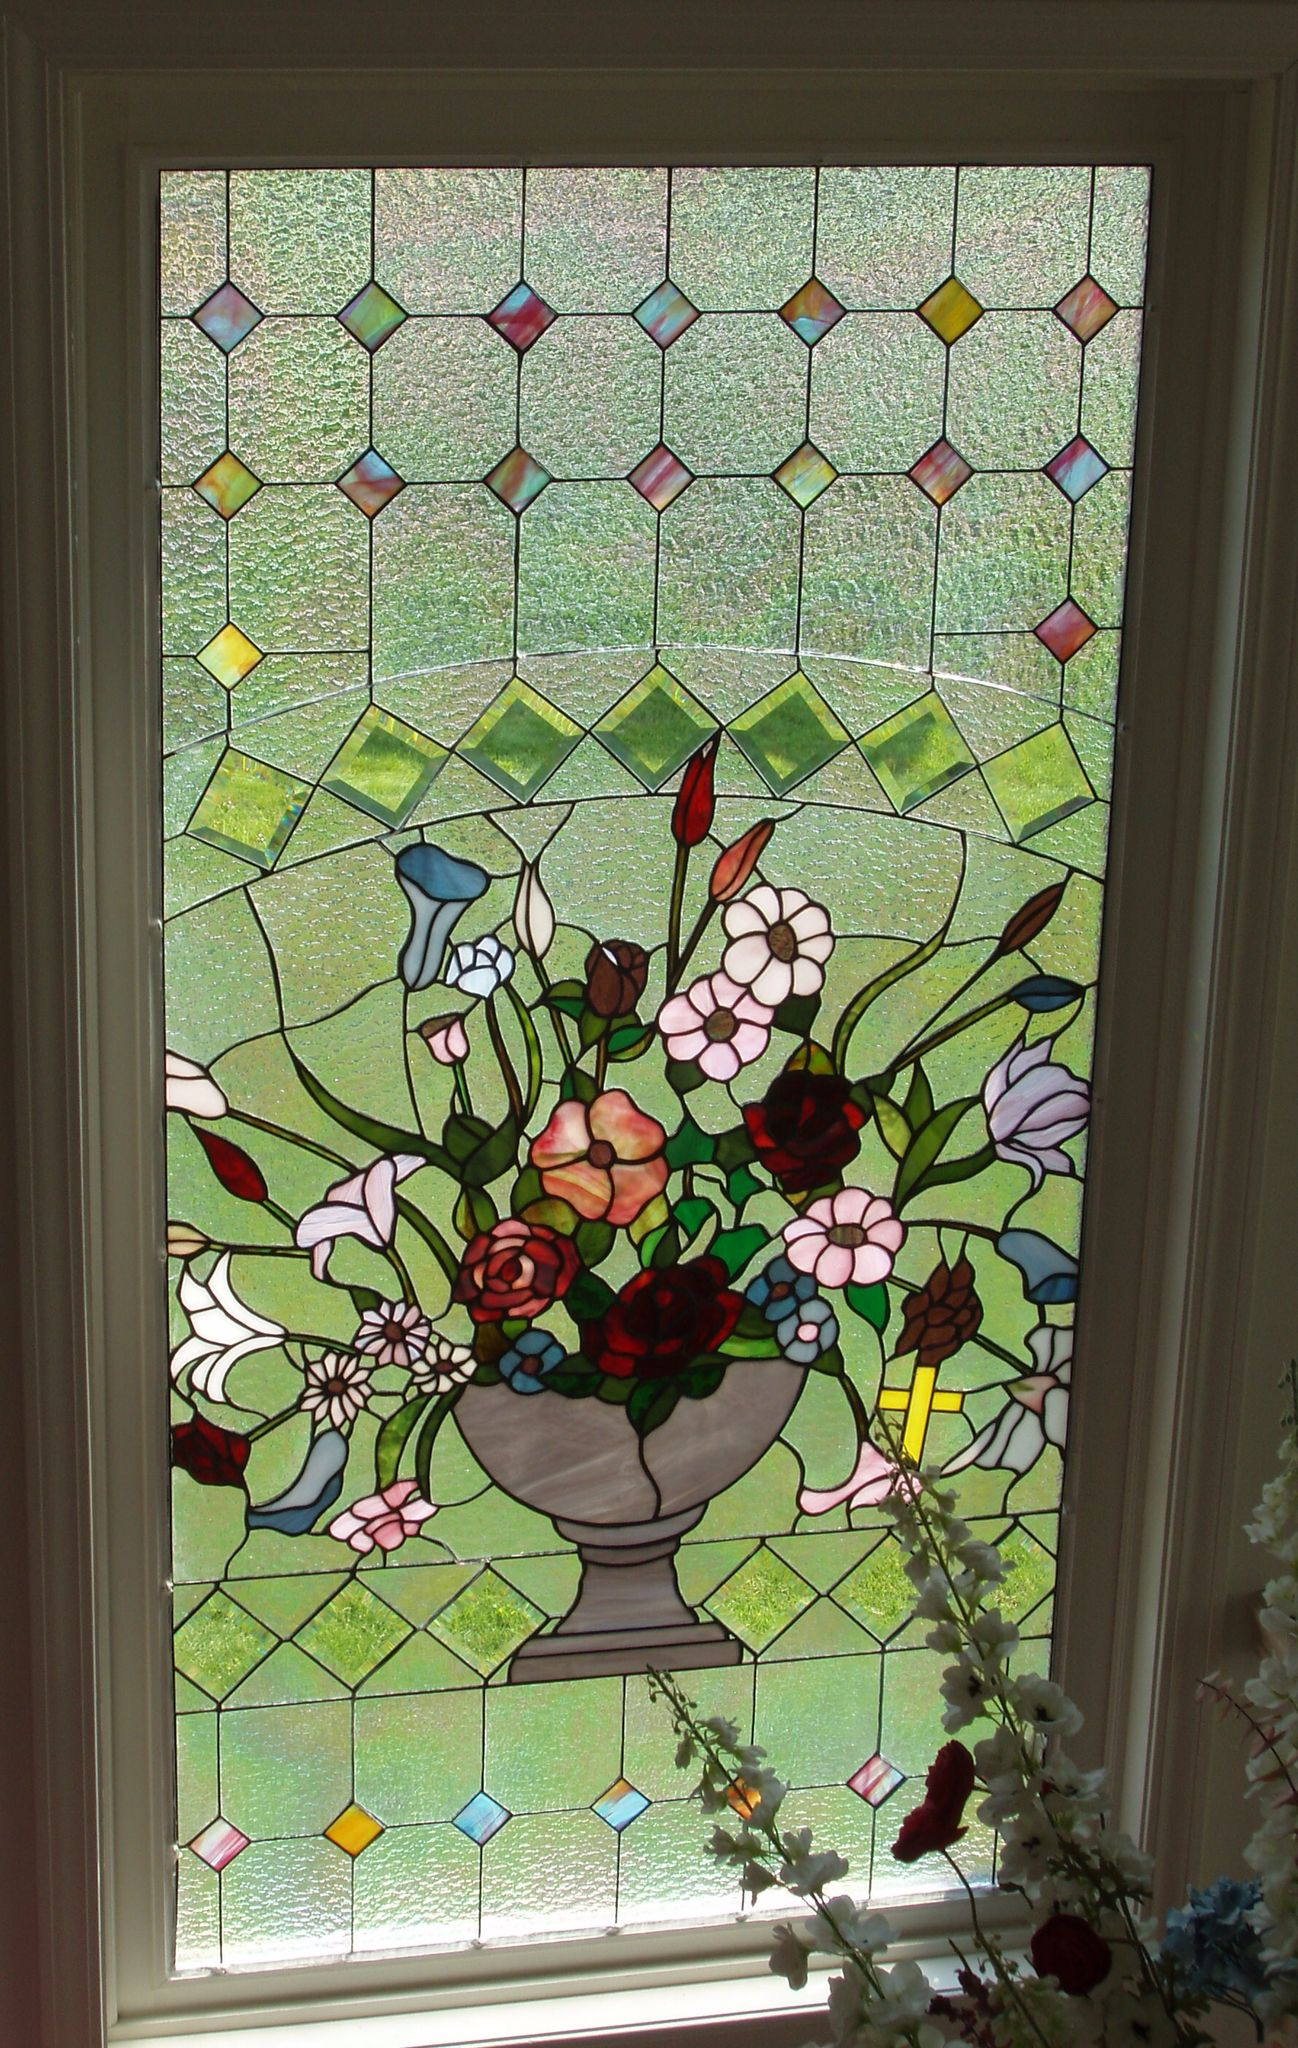 Floral Stained Glass Window Custom Designed For A Funeral Home Long Island Custom Stained Glass Www L Pintura En Vitral Disenos De Vitrales Ventanas De Vidrio